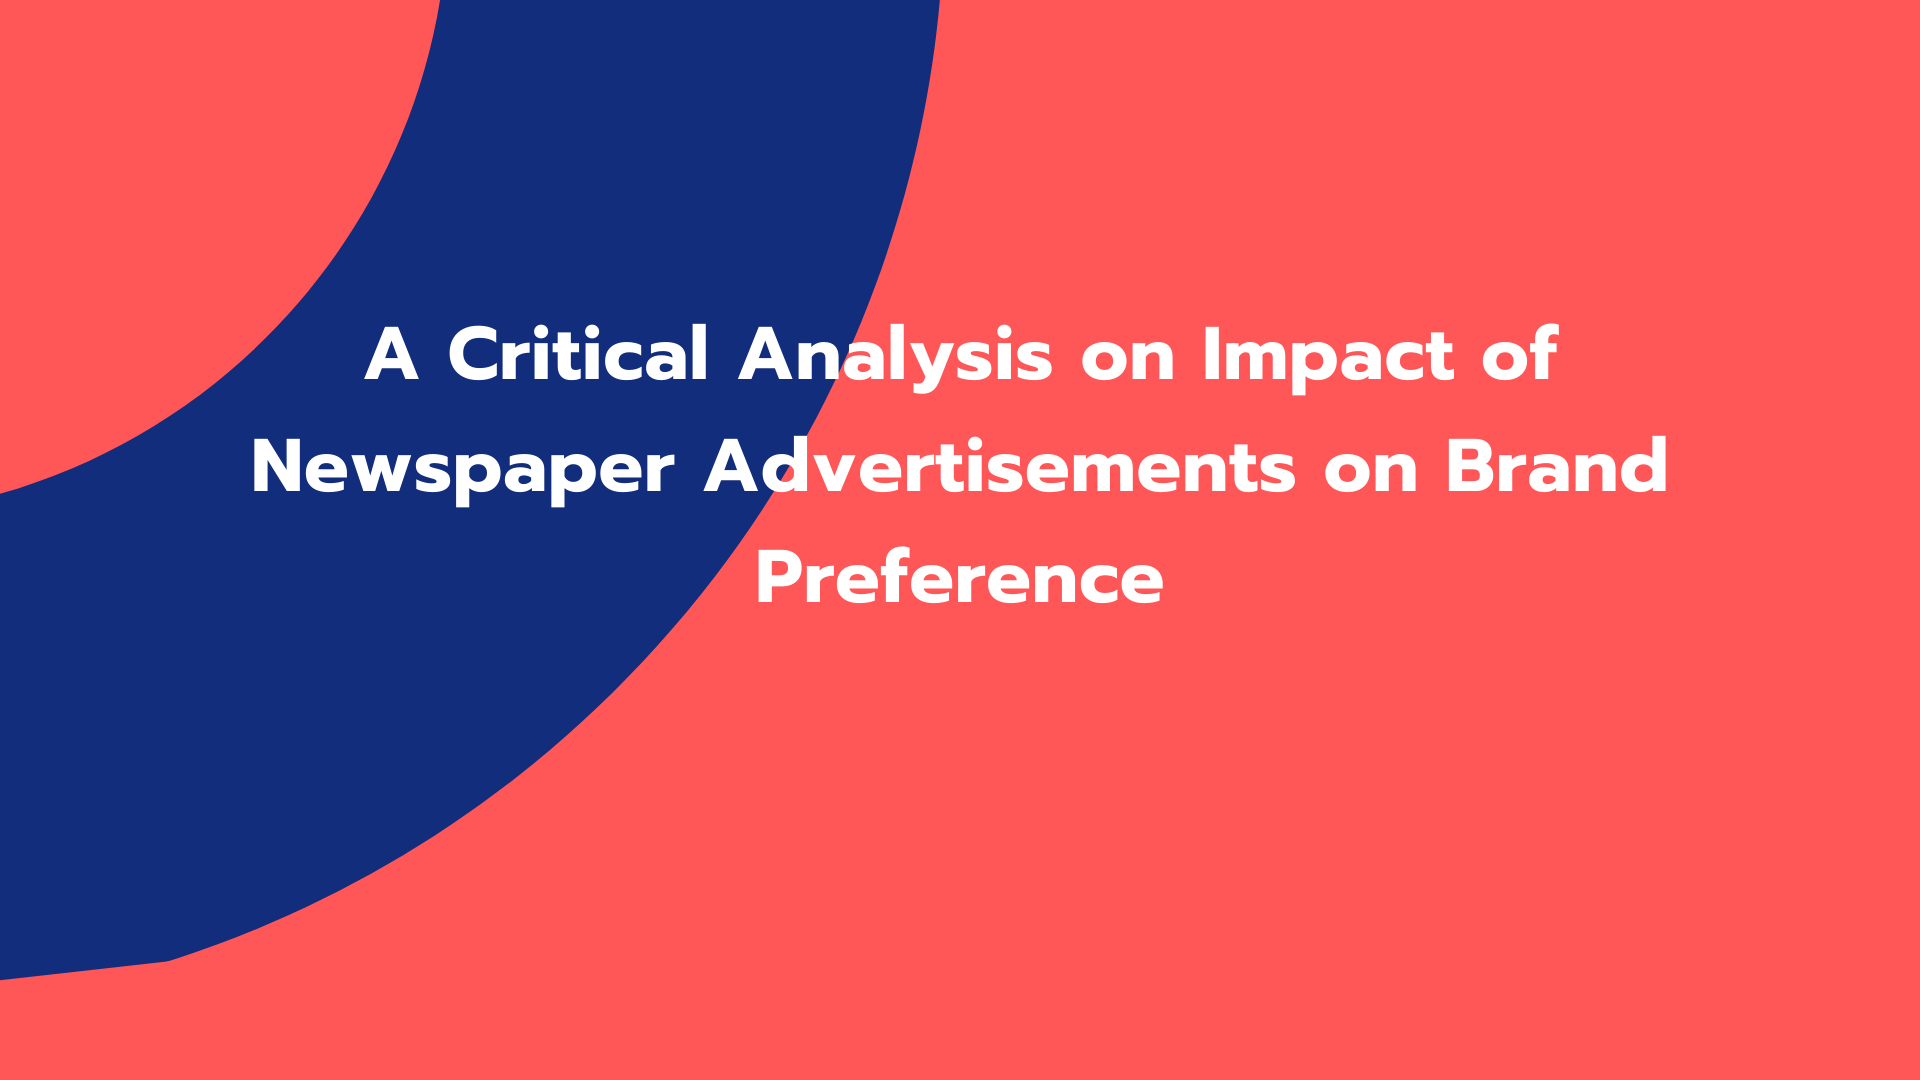 A Critical Analysis on Impact of Newspaper Advertisements on Brand Preference